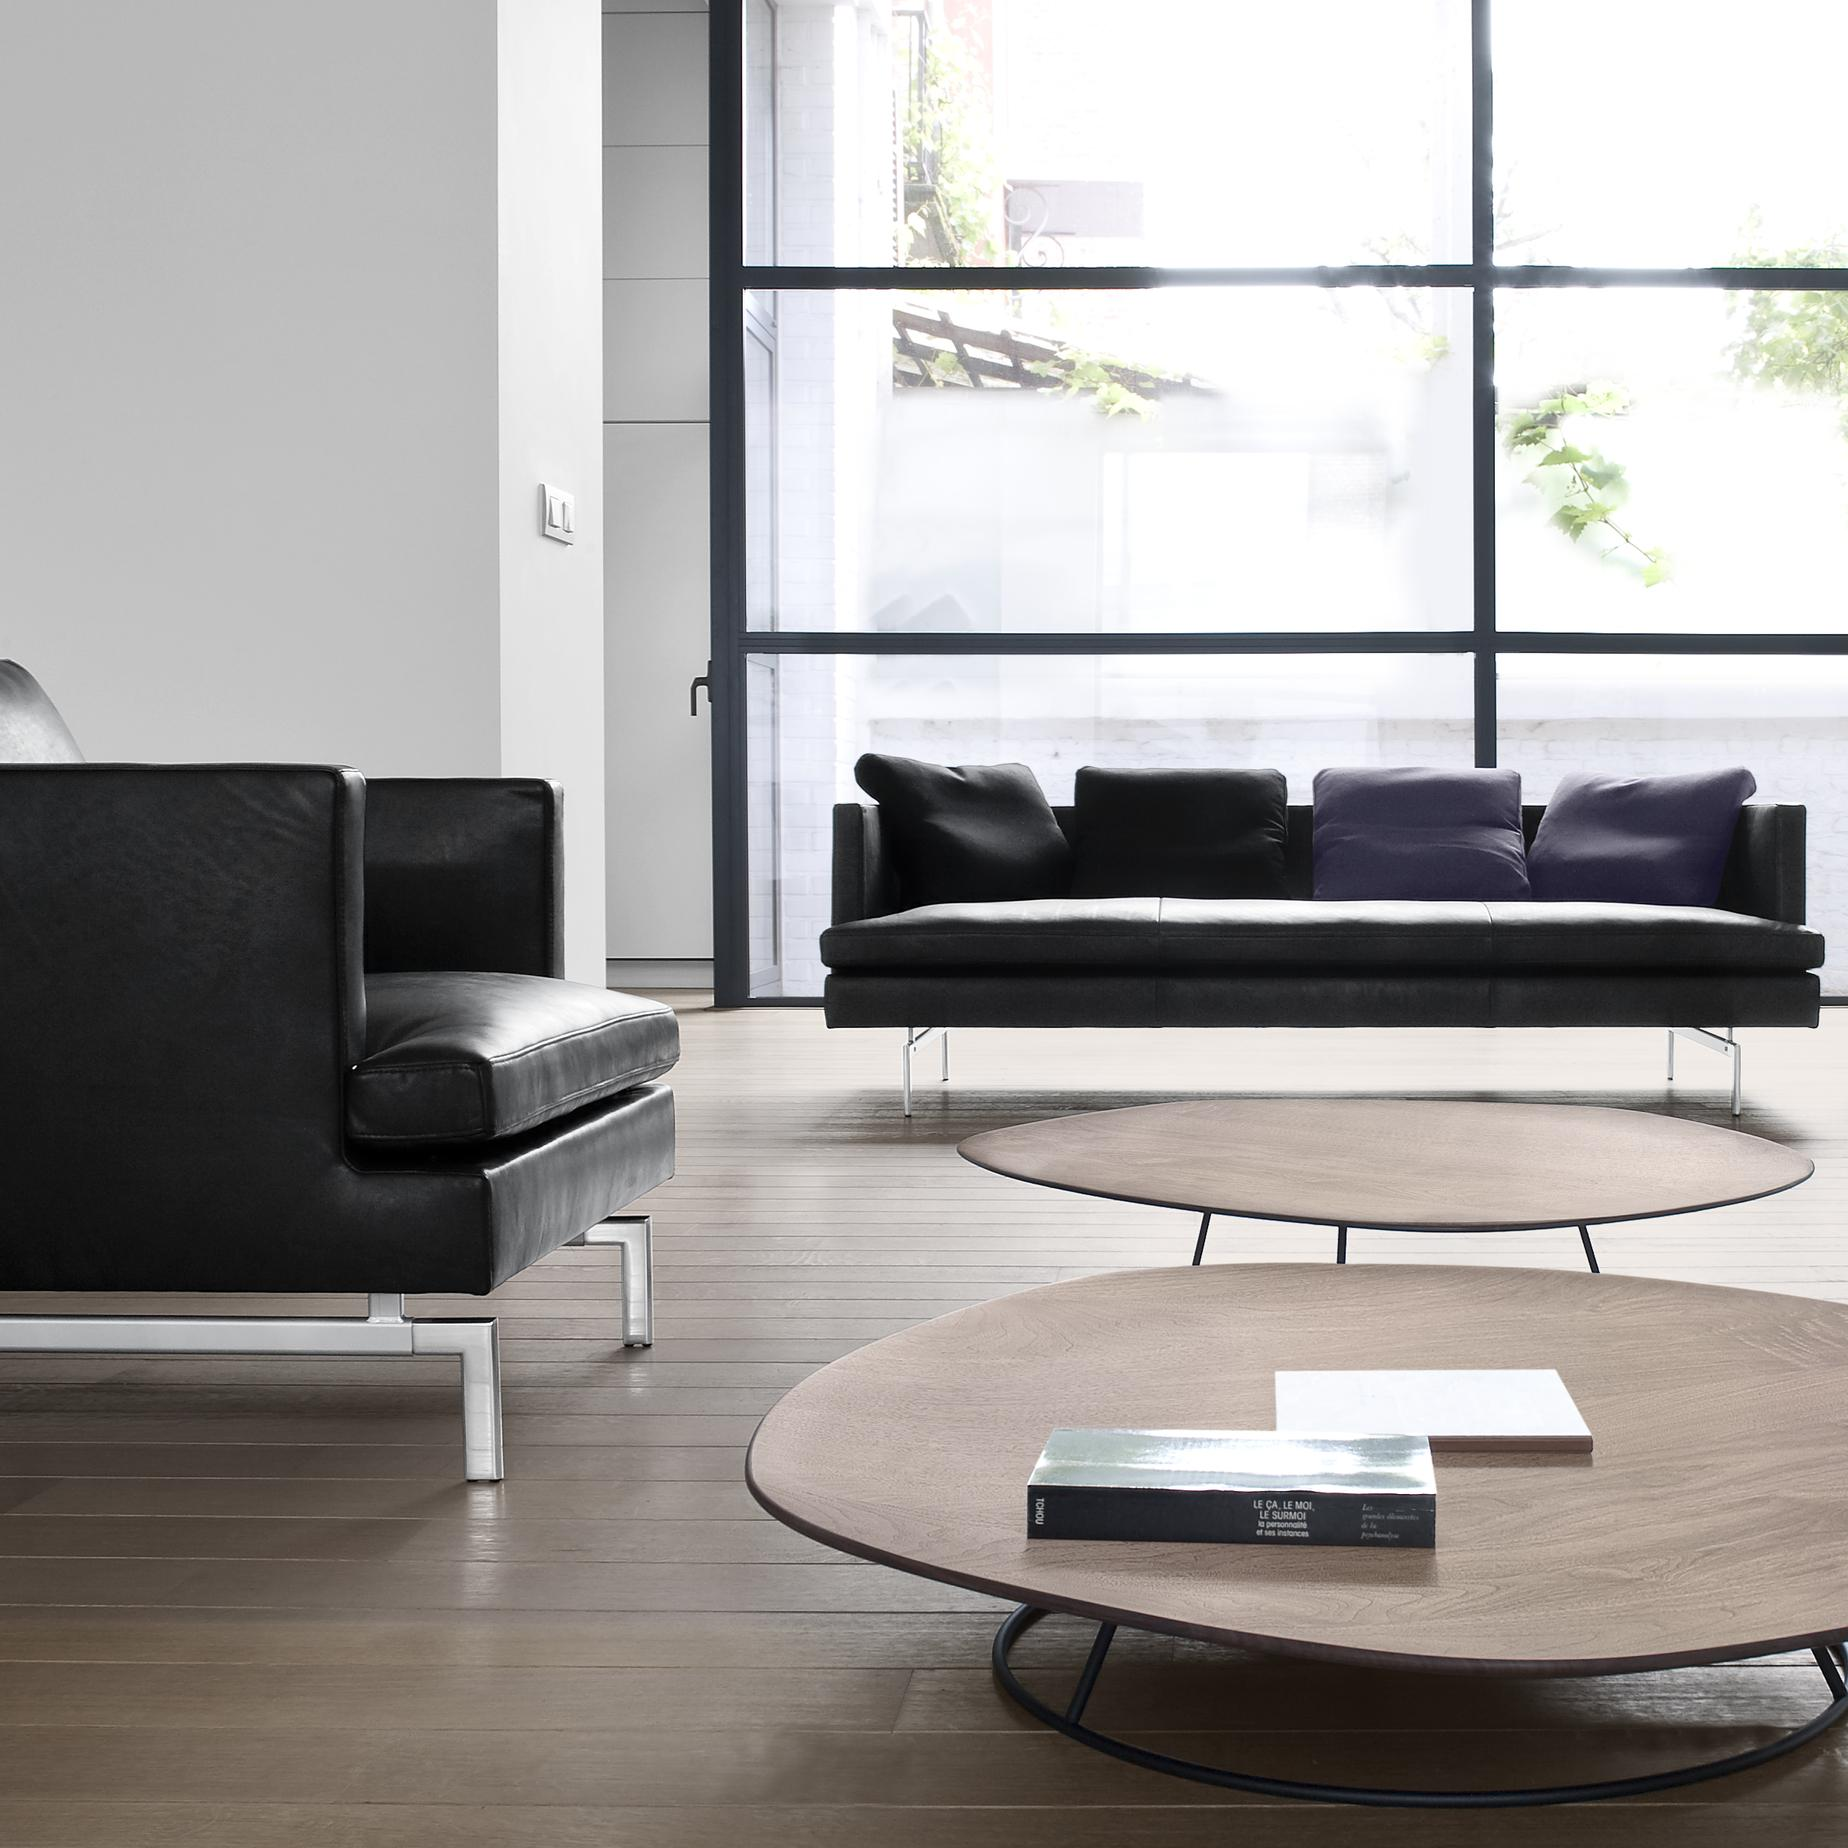 Overview. PEBBLE Ligne Roset